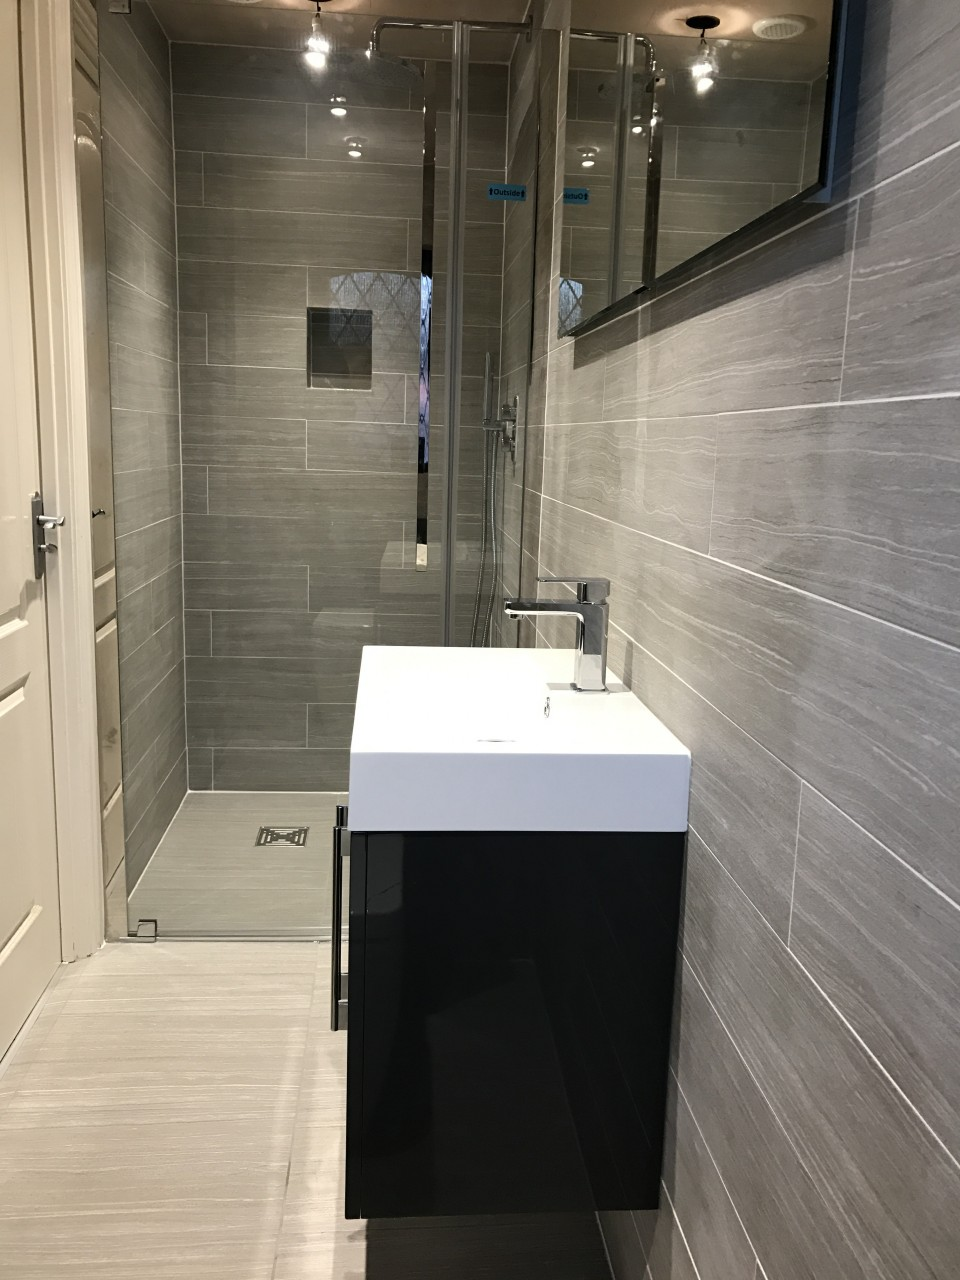 Engrossing French En Suite Bathroom Installation En Suite Shower Room To Wet Room En Suite Shower Room To Wet Room Marchbank Bathrooms En Suite Bathroom houzz-03 En Suite Bathroom